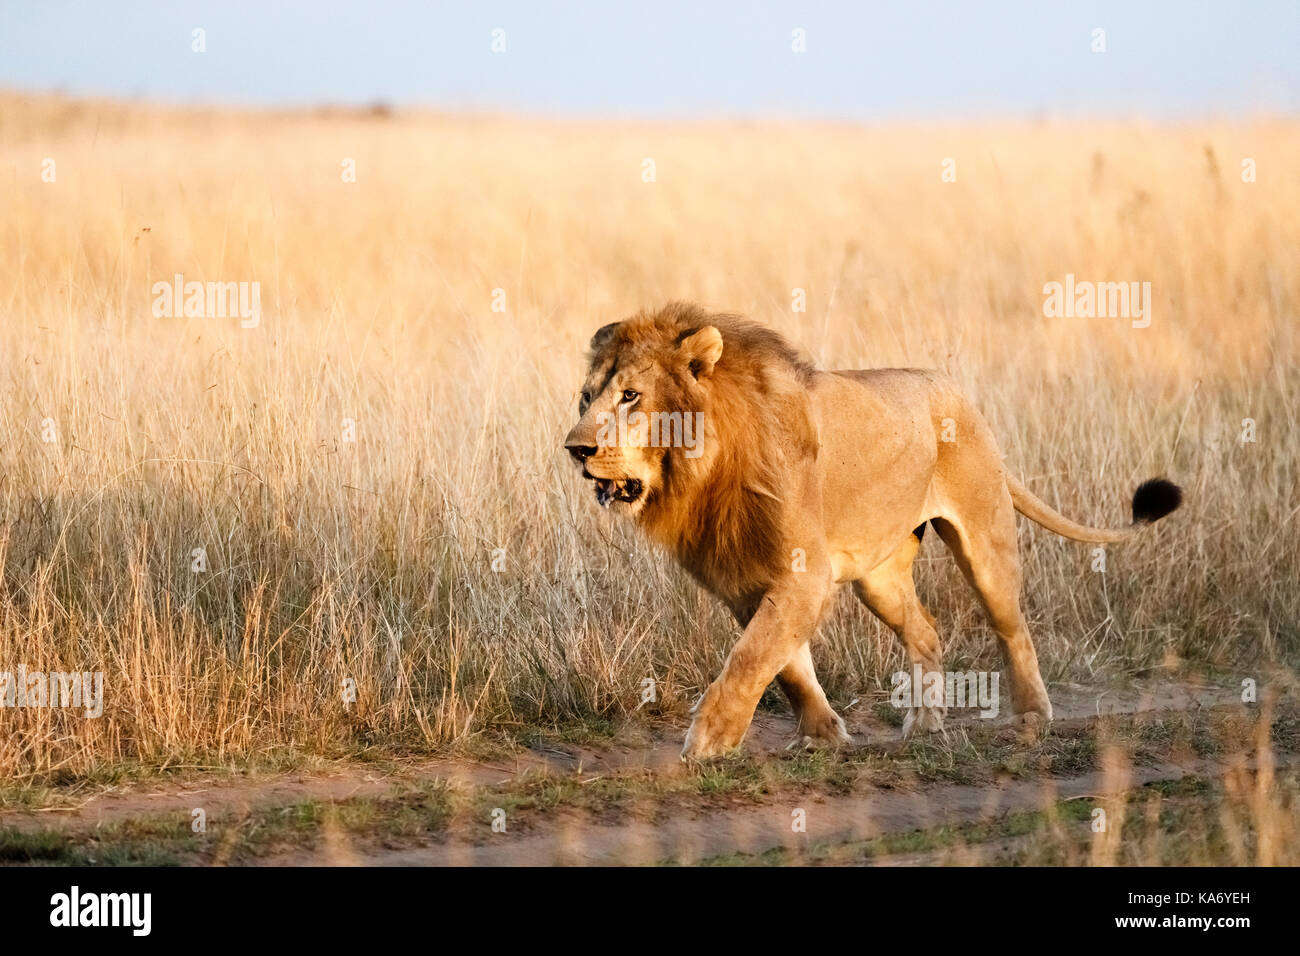 Apex predator: Adult male Mara Lion (Panthera leo) prowls along a track through long grass in early morning light, Stock Photo